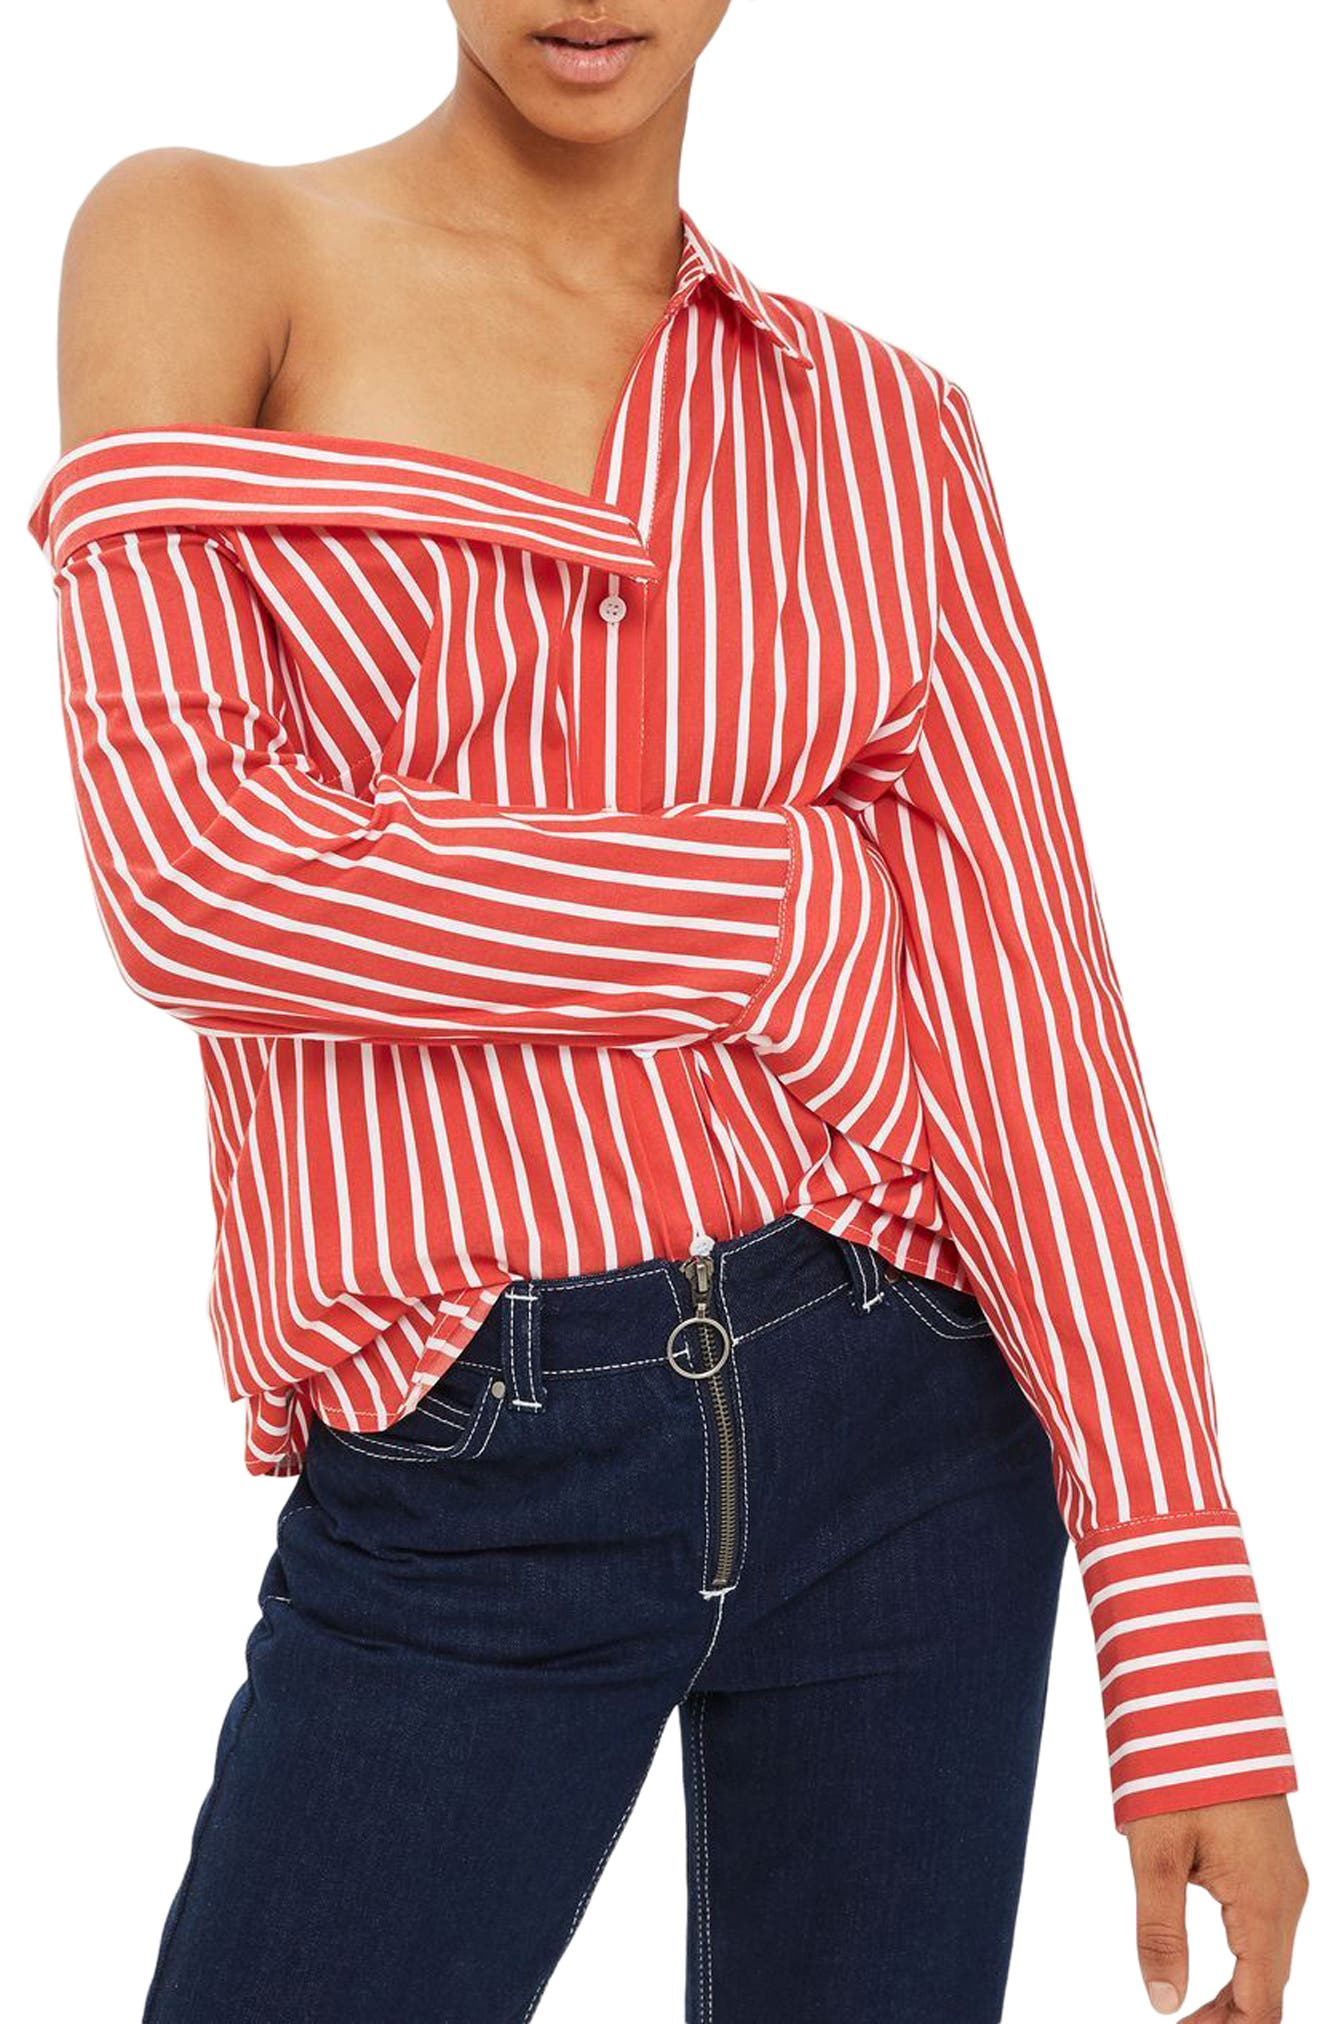 Alternate Image 1 Selected - Topshop Stripe Off the Shoulder Top (Regular & Petite)